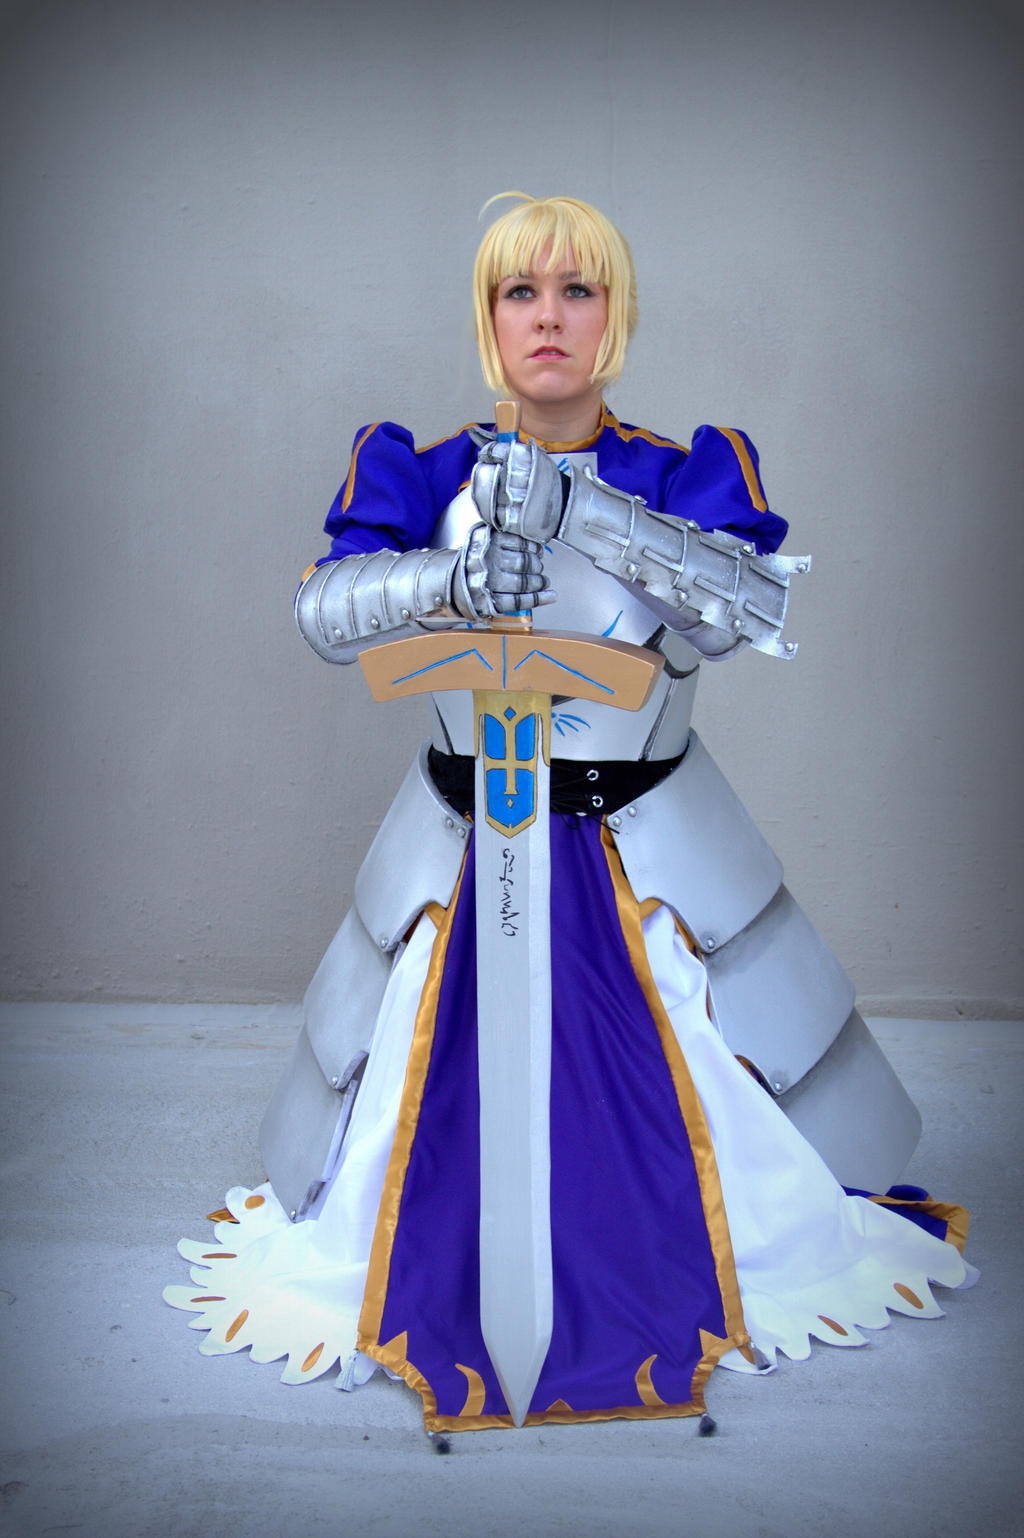 Saber Fate/Stay Night by ScissorWizardCosplay